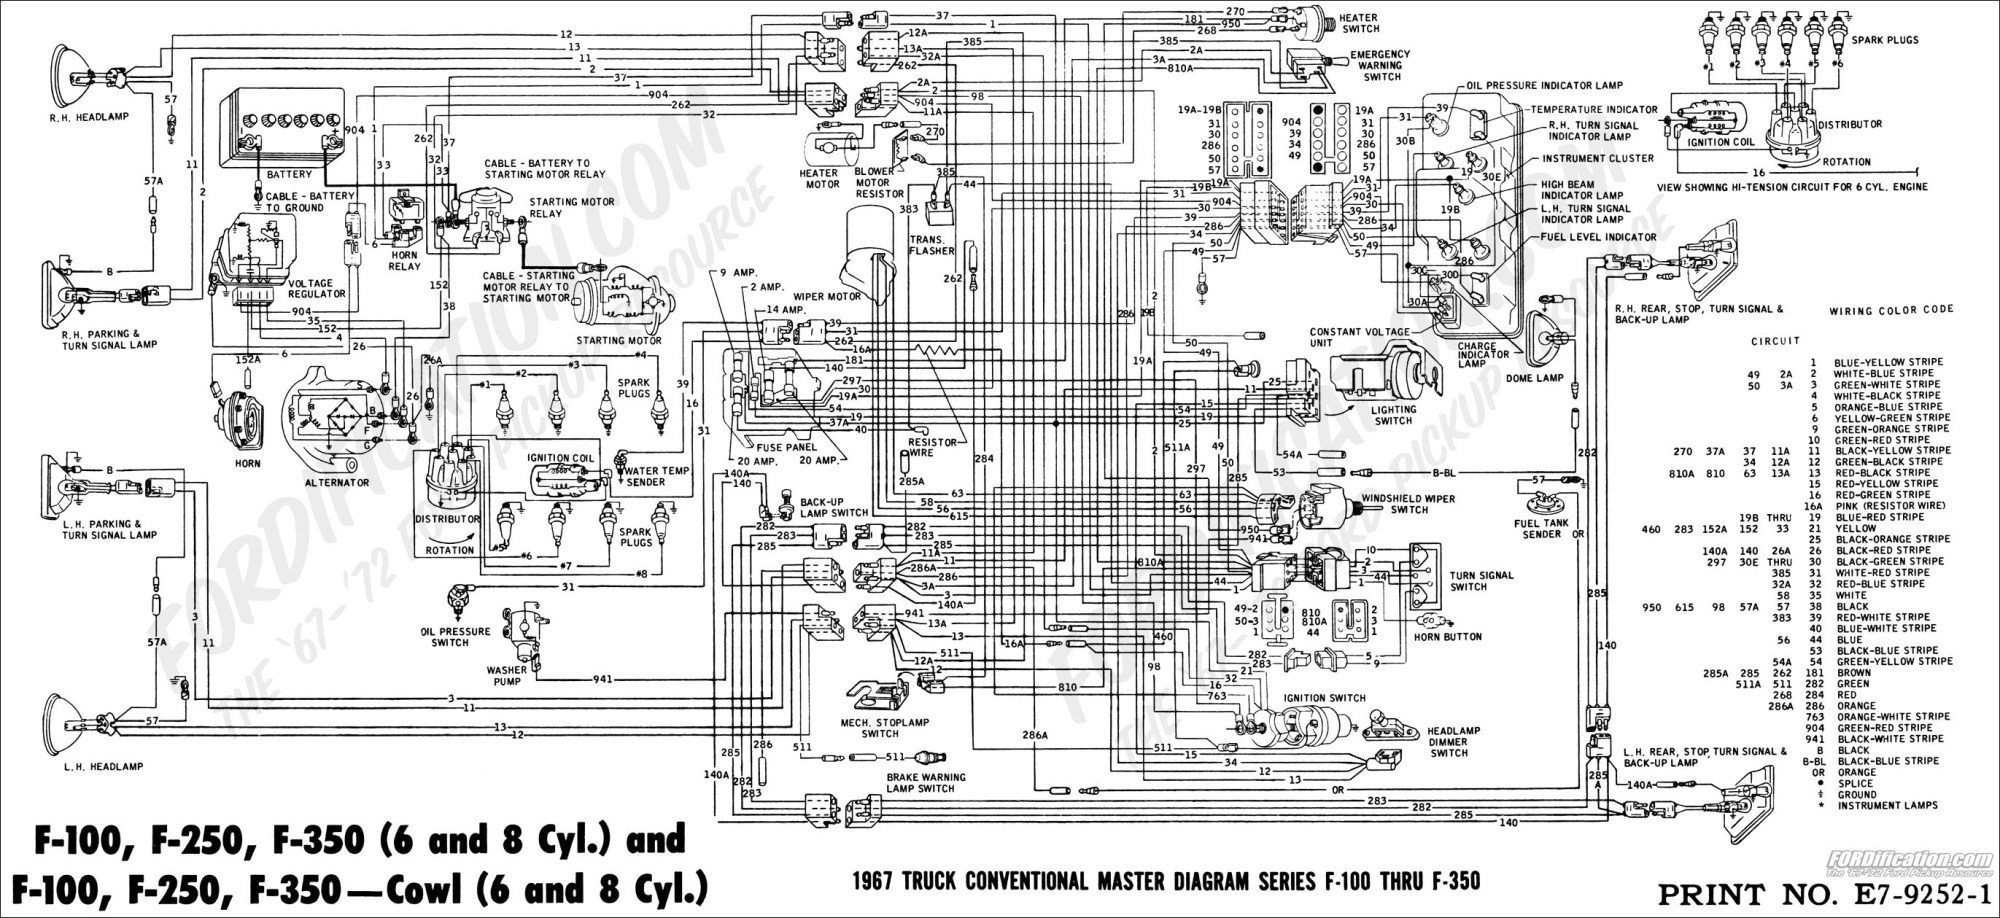 hight resolution of 94 ford wiring diagram wiring diagrams 94 ford mustang radio wiring diagram 1994 ford wiring diagram